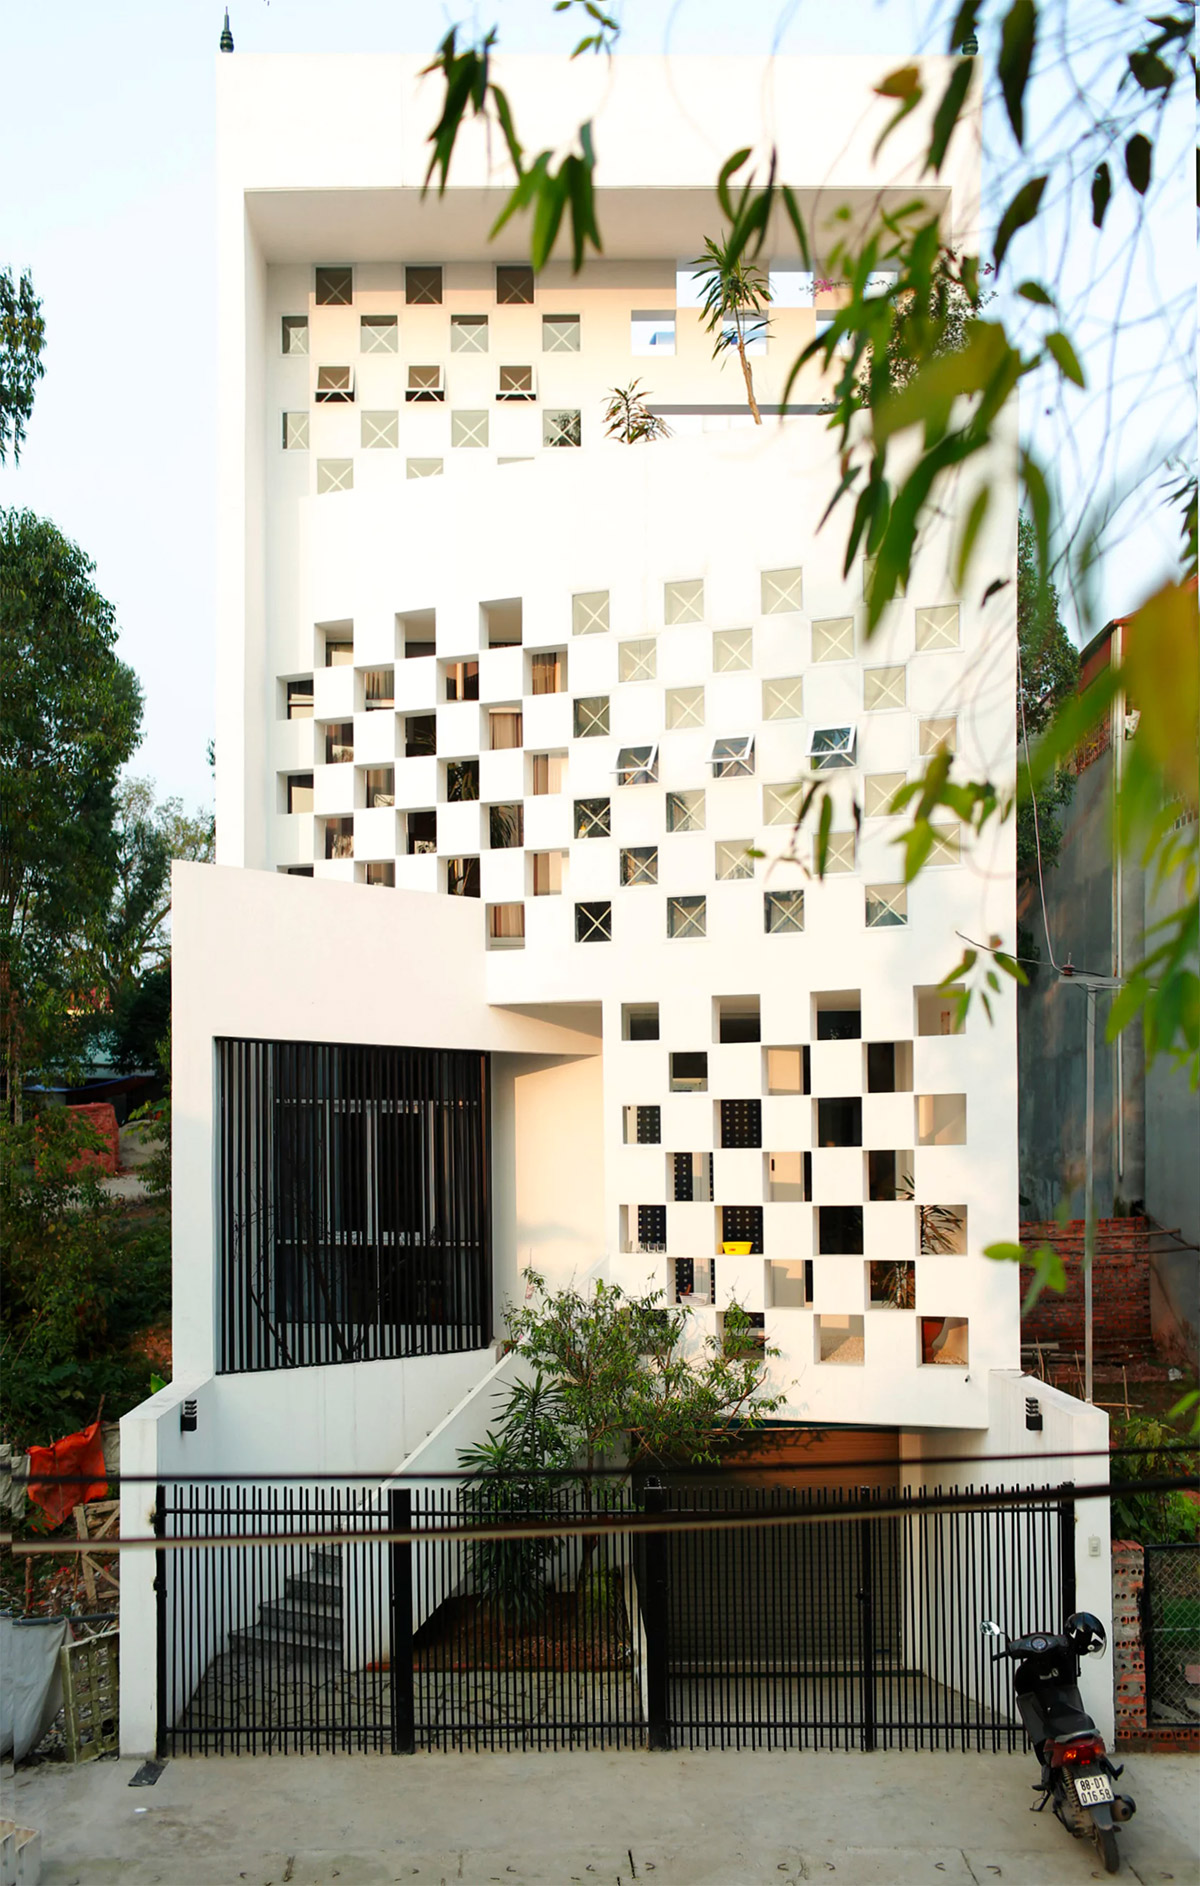 50 Narrow Lot Houses That Transform A Skinny Exterior Into Something Special images 28